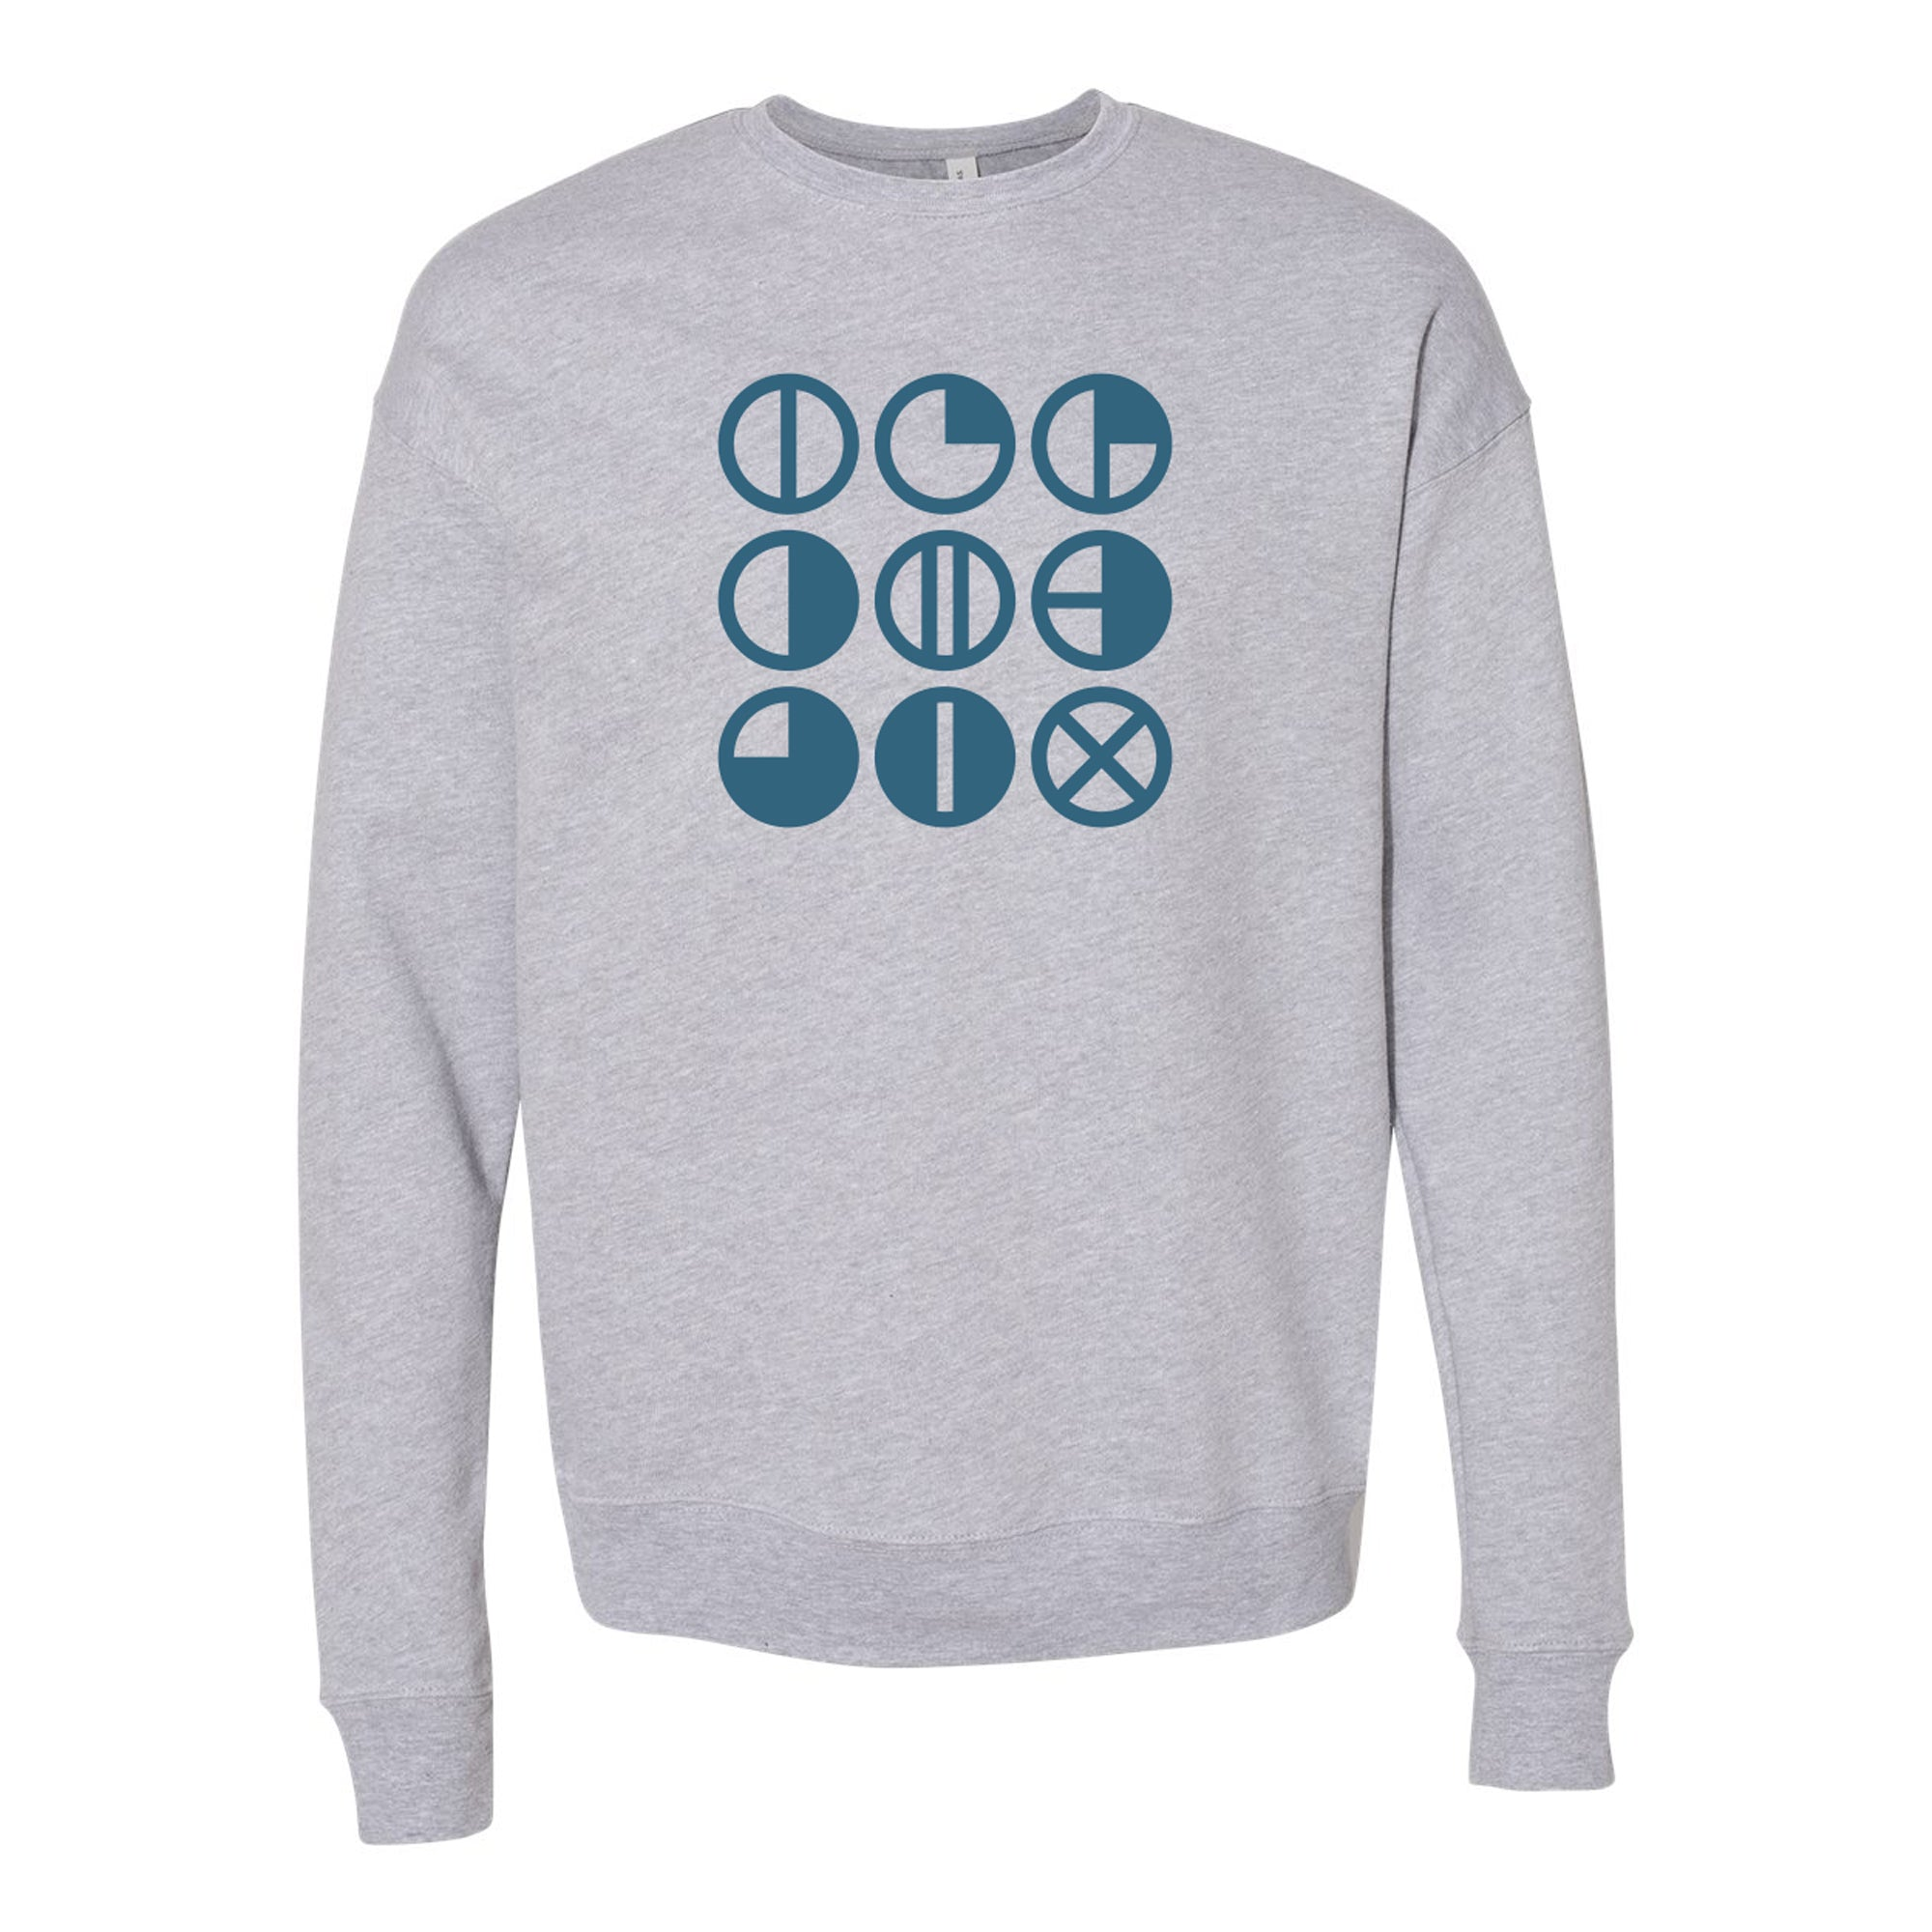 CLASSIC LOGO Sweatshirt - Athletic Heather